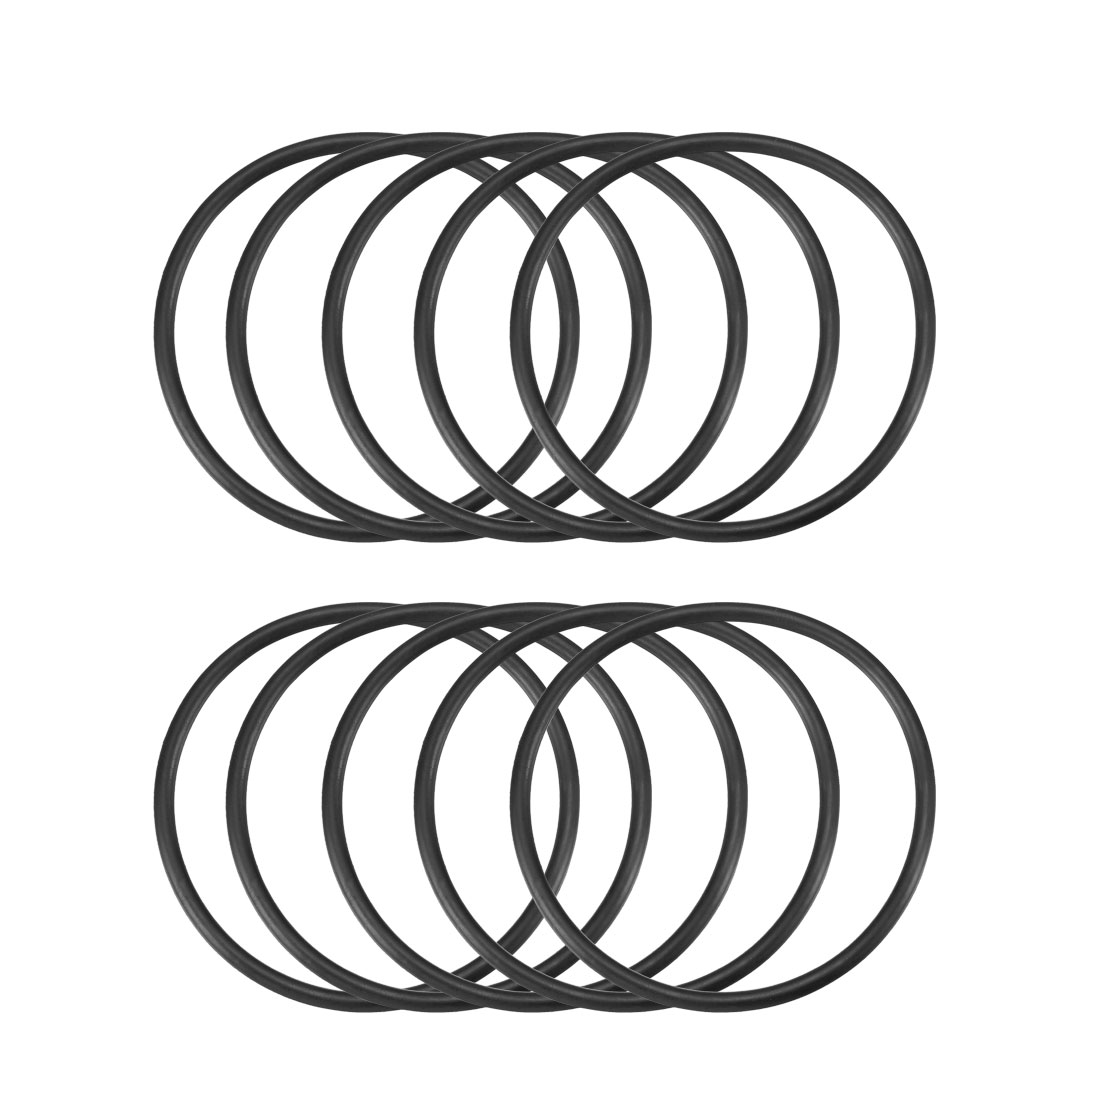 10 Pcs 56mm x 3.1mm Black Silicone O Rings Oil Seals Gaskets